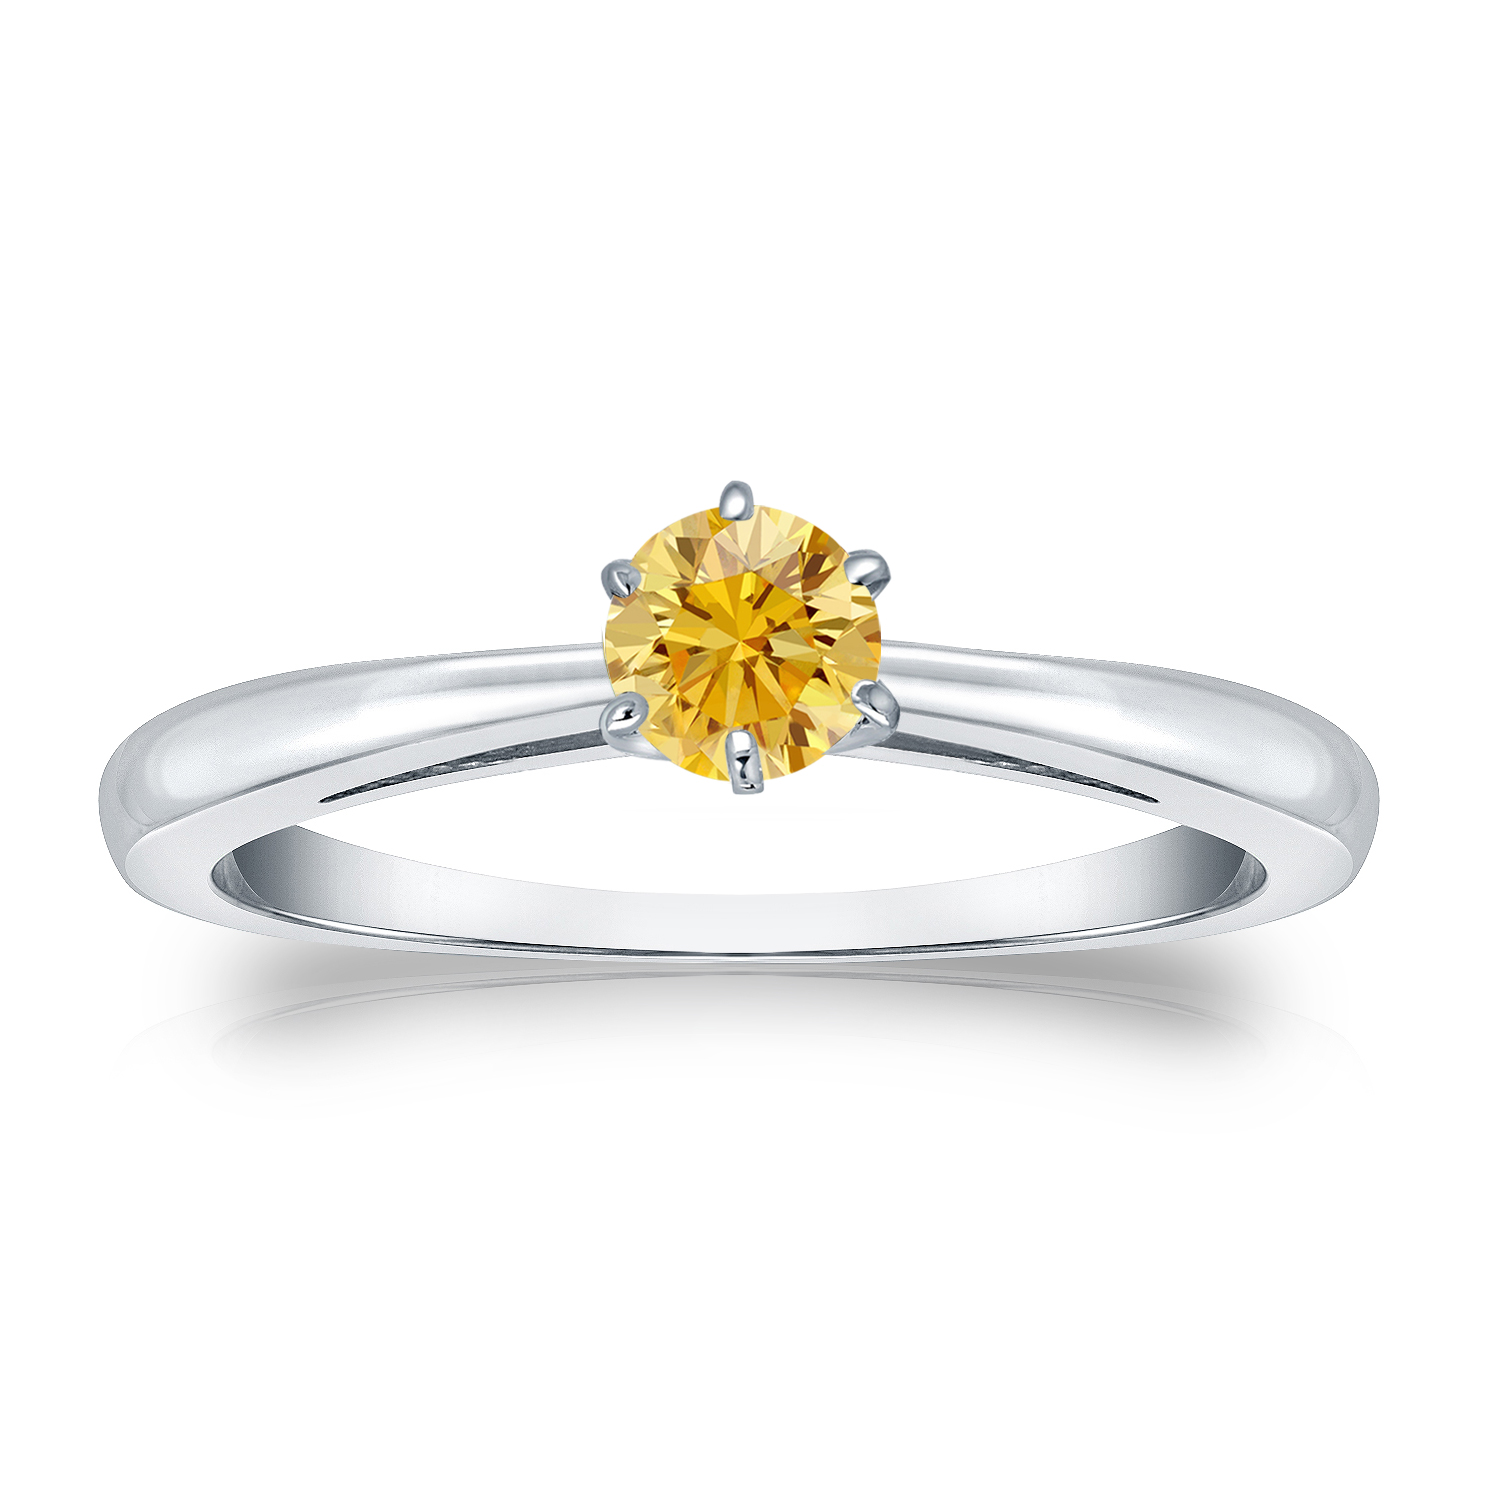 1/4 CT YELLOW DIAMOND ENGAGEMENT RING 14K WHITE GOLD